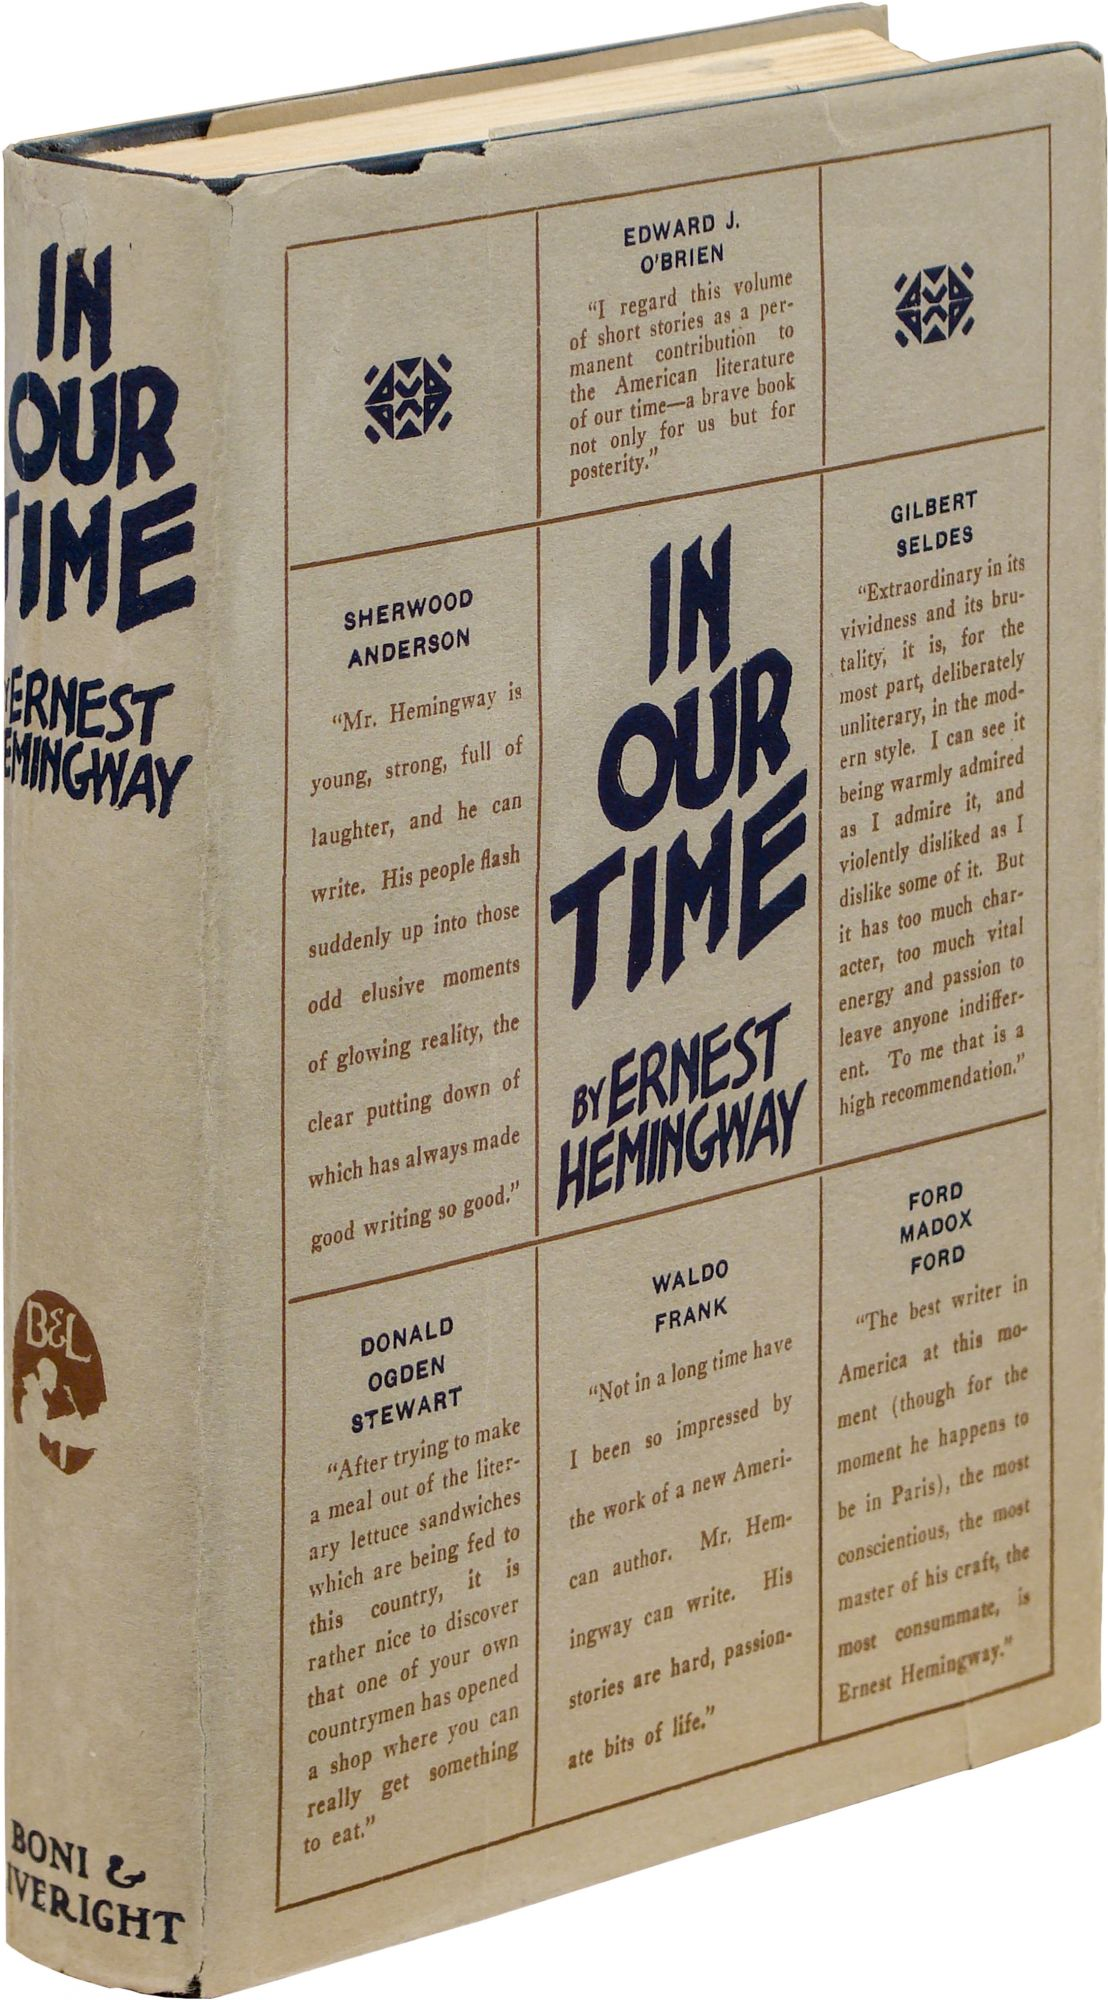 masculinity in in our time by hemingway Ernest hemingway has written so many books among them in our time which is a collection of many stories which focuses on this theme of masculinity the book captures the great influence of war with the patterns of the acts of people before war, during the war, and also after the war from the beginning of this book to the very end of the book.